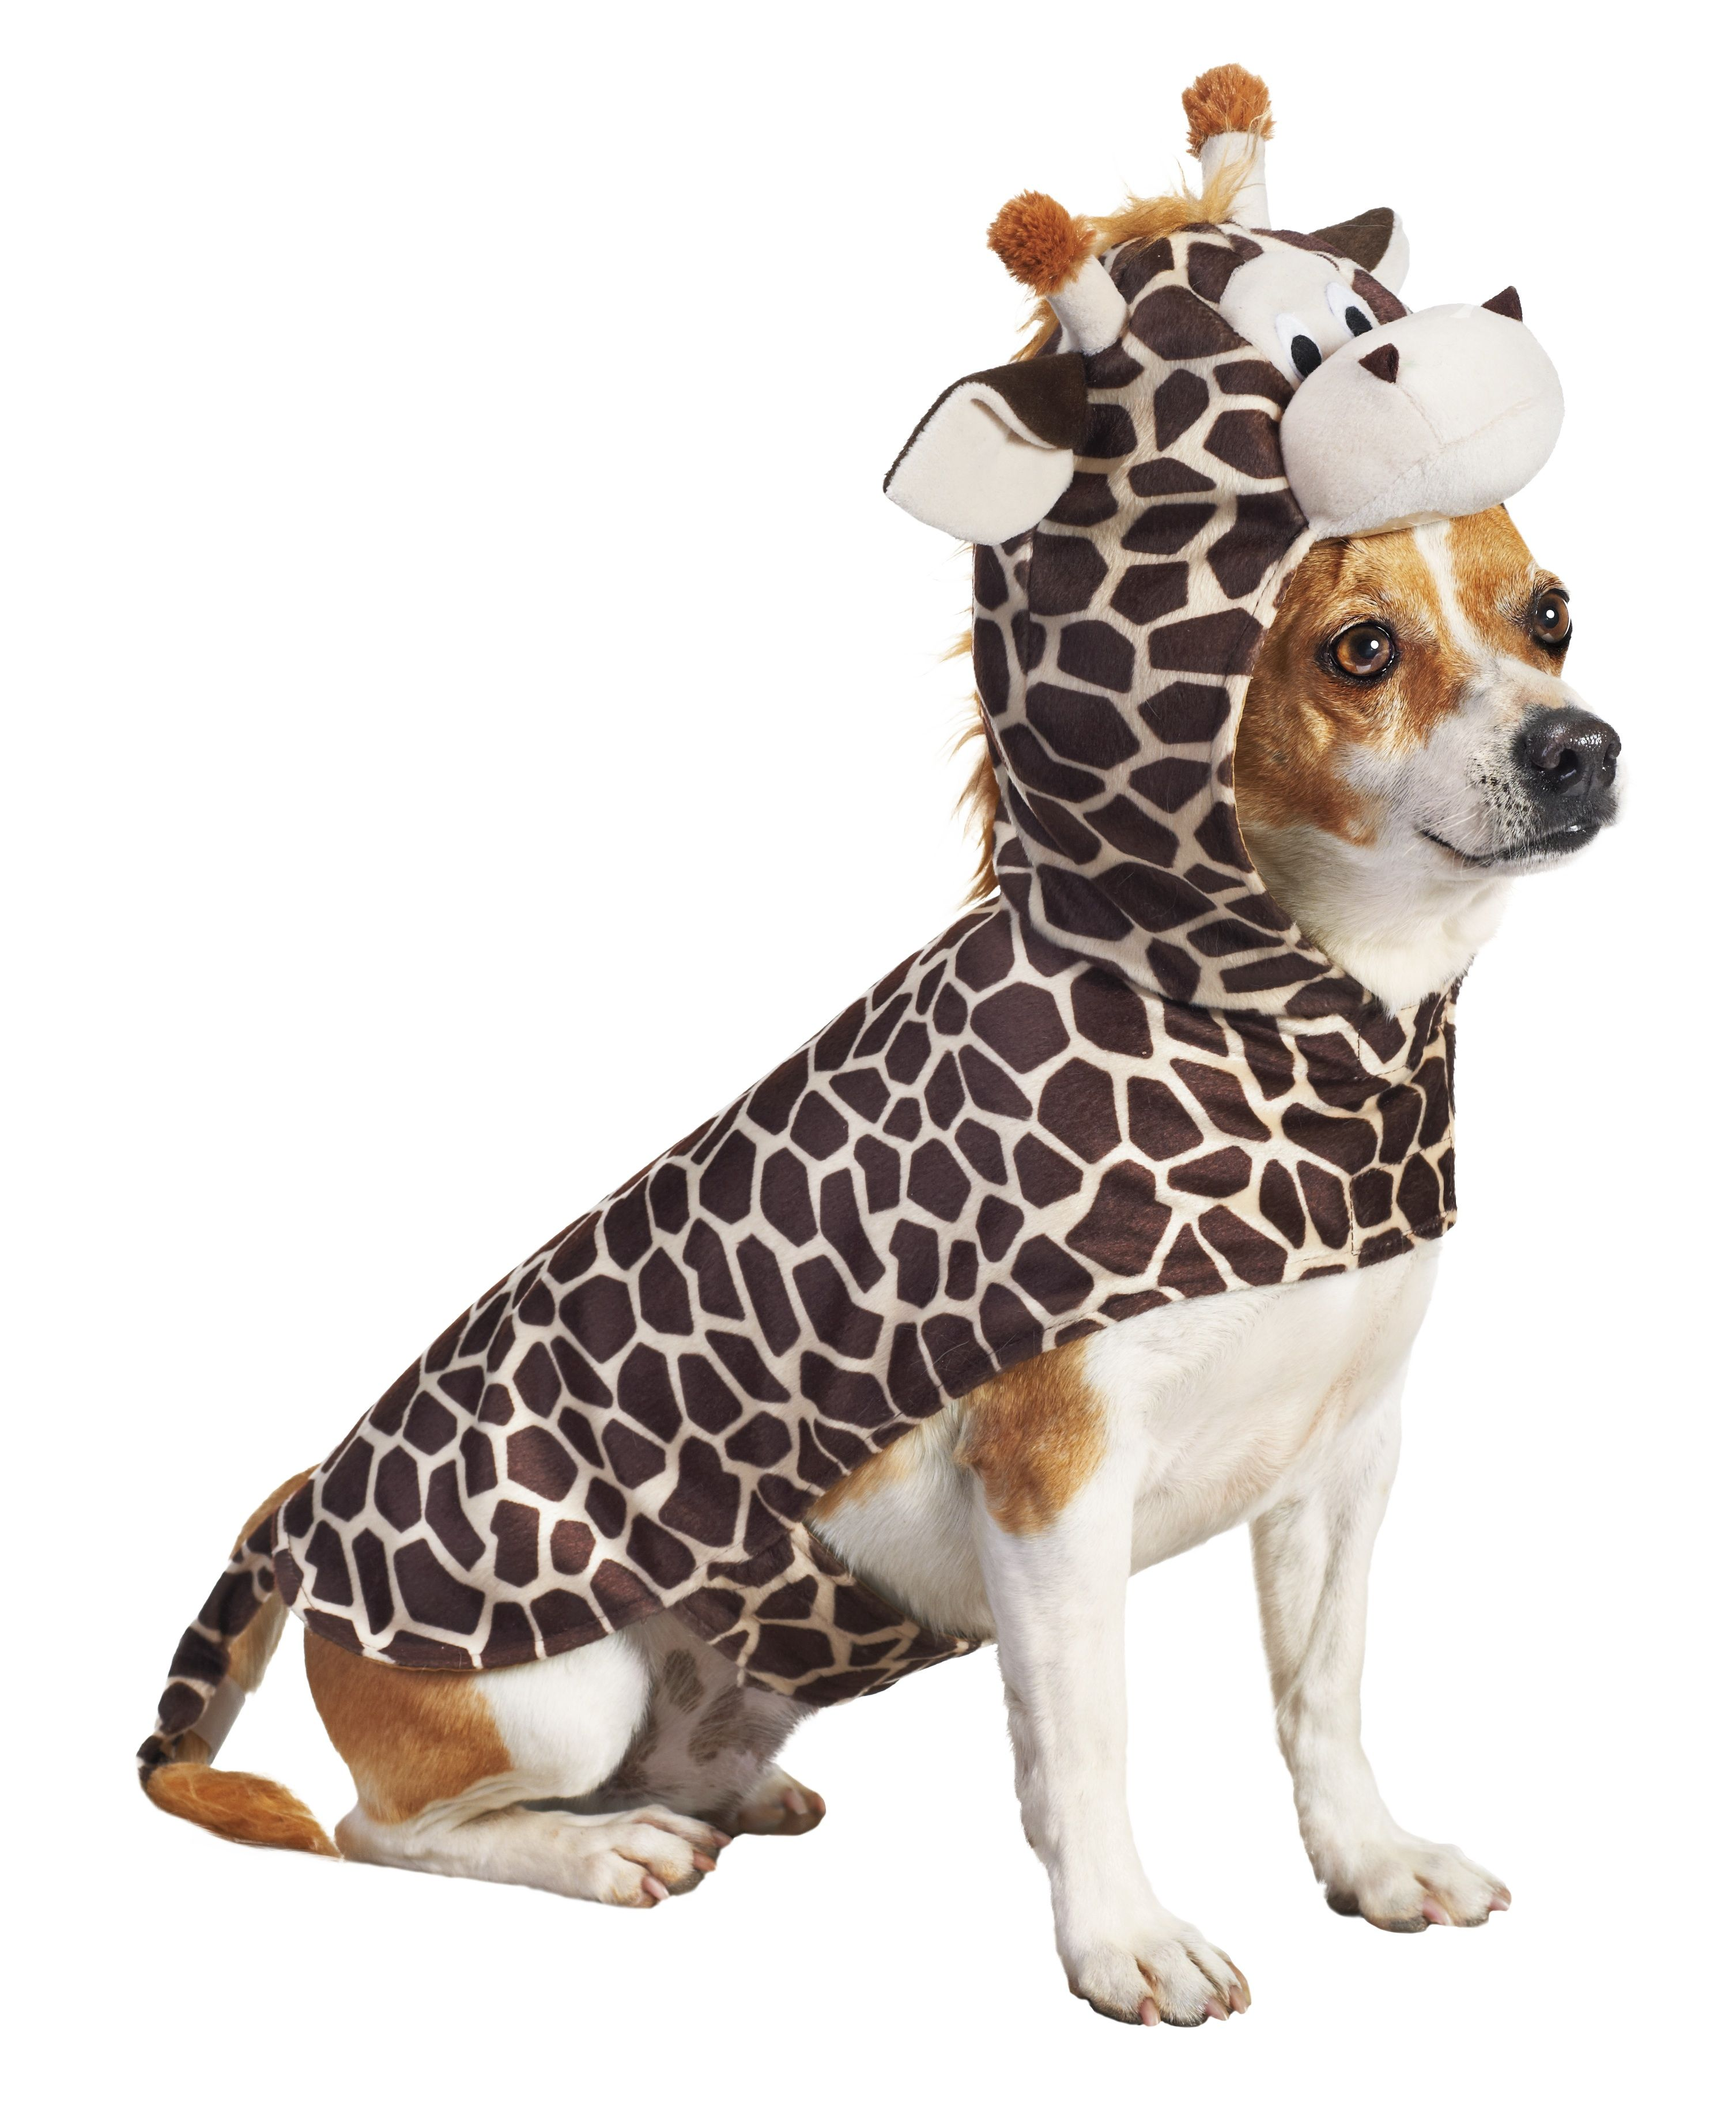 Giraffe Dog One Of Petco S Top 10 Halloween Costumes For Pets